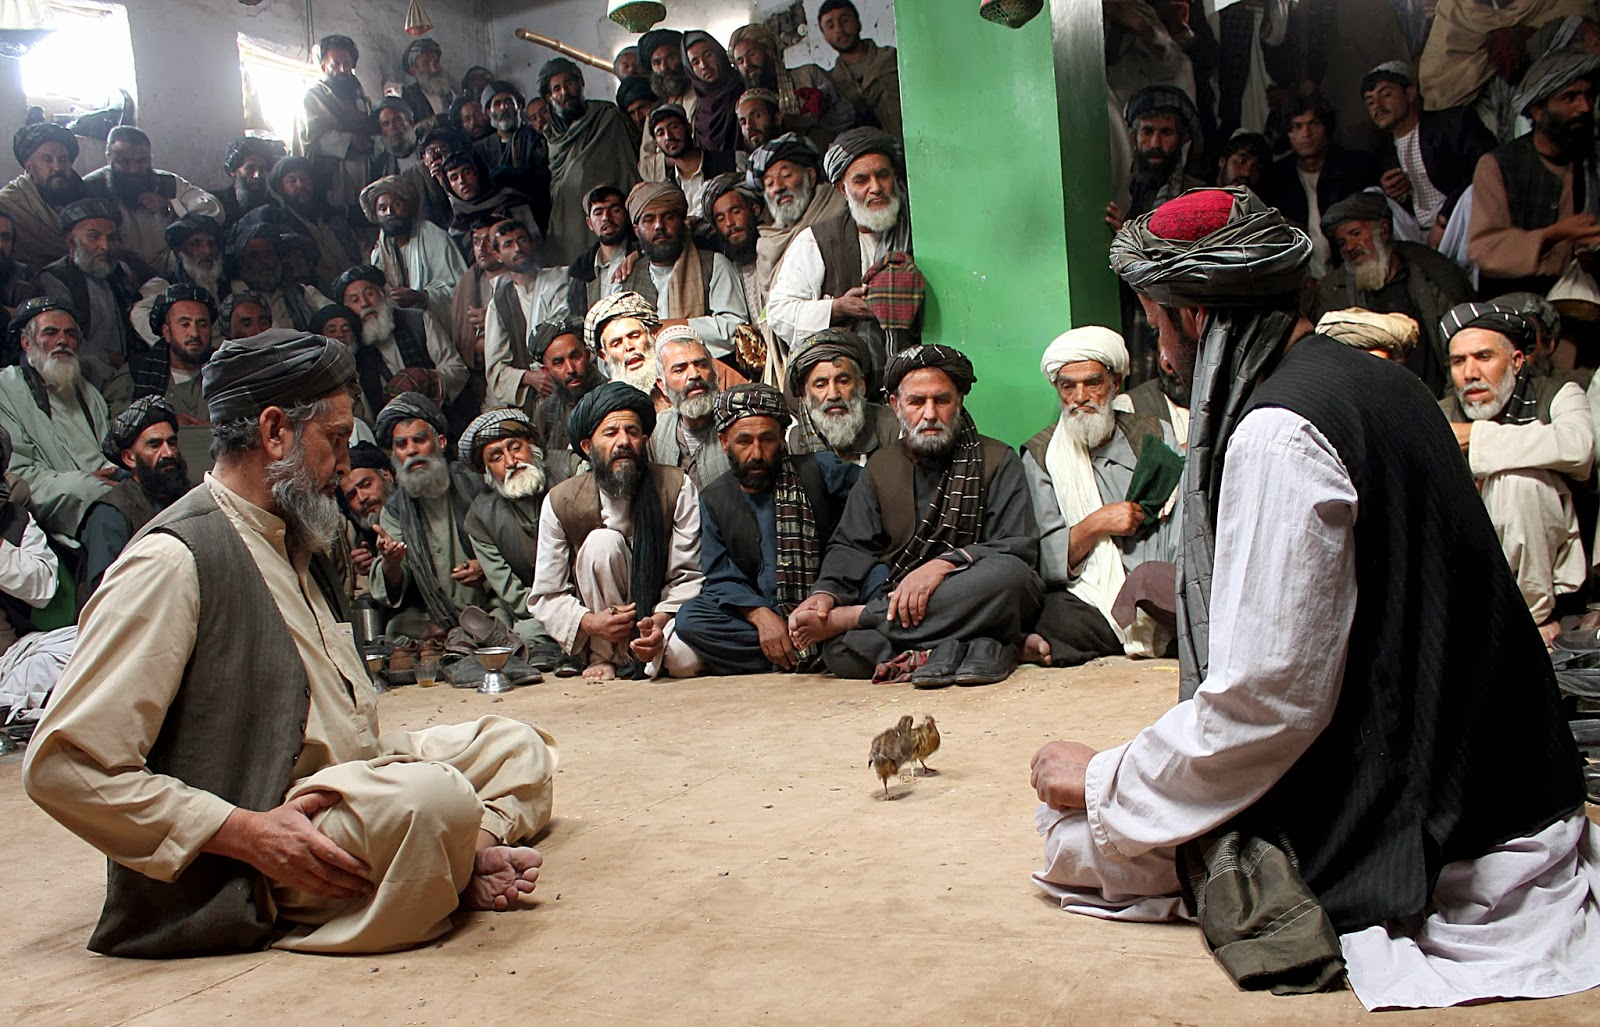 Afghanistan, Fight, Animal, Birds, News, Quailfighting, Quail, Taliban, Unrest, Sports, Offbeat, Feature, Game, Competition, Men, People, War, Economy,